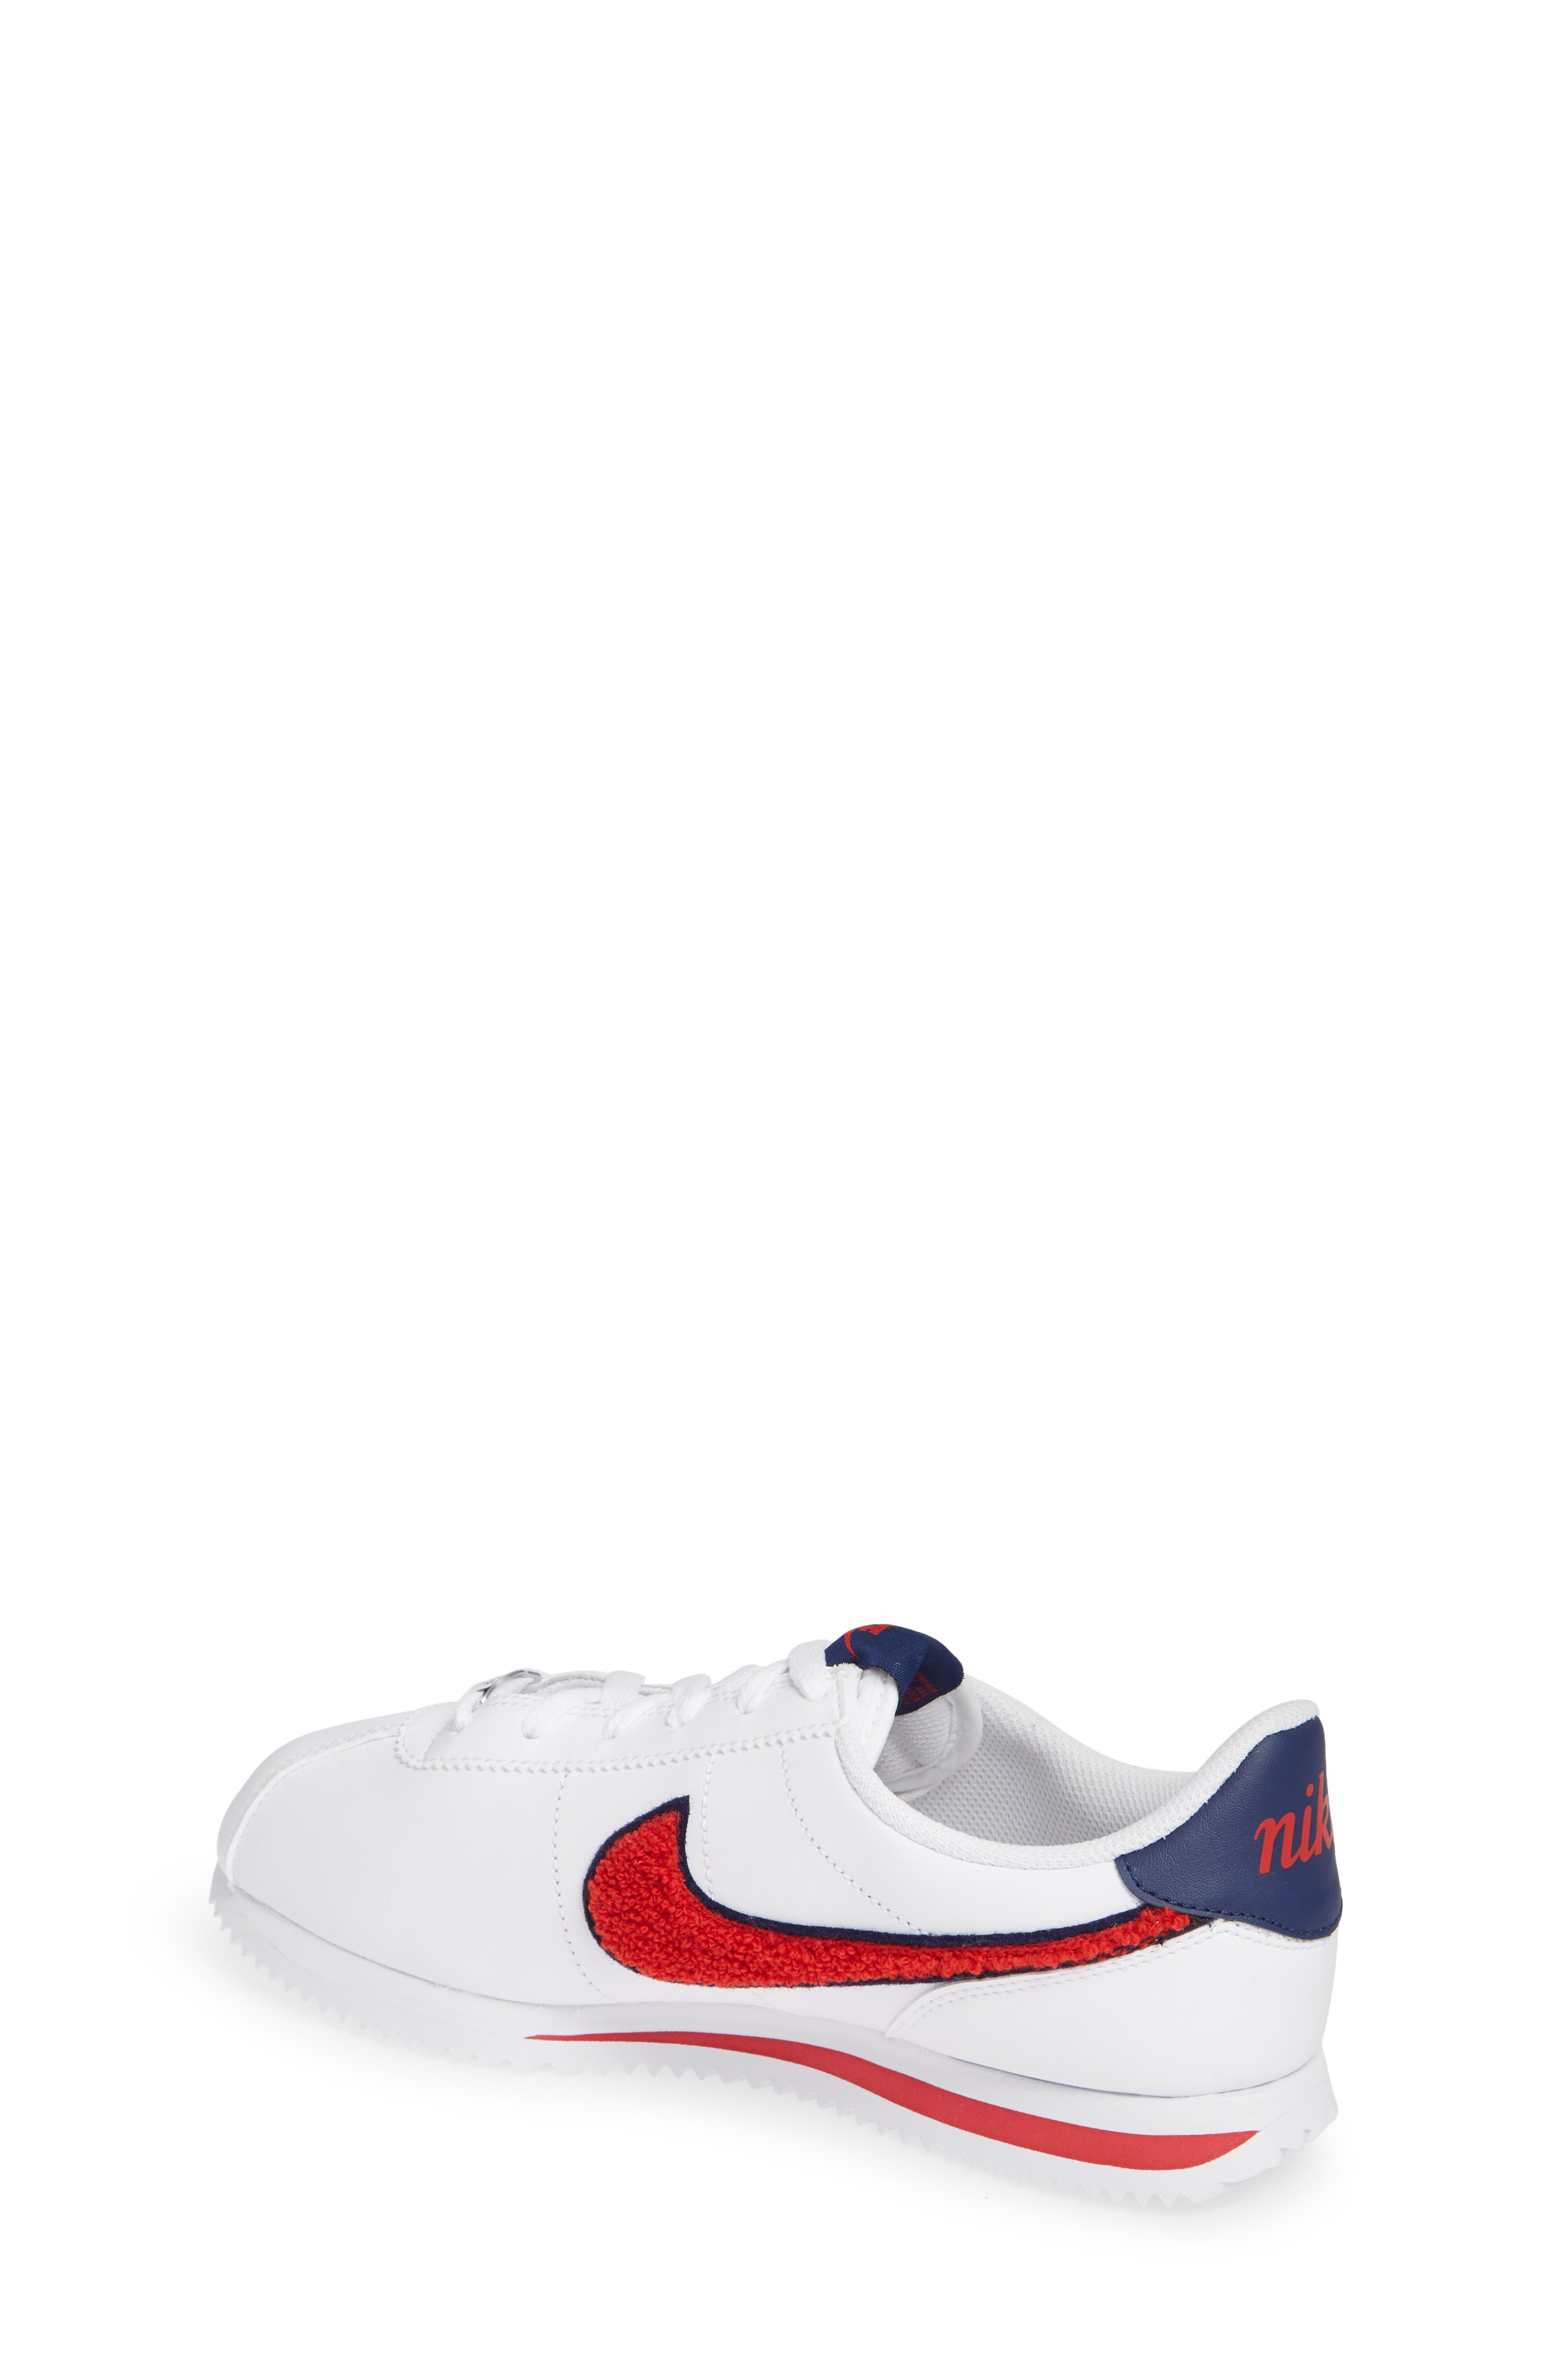 new style dee21 a7515 ... store unisex nike shoes sneakers nordstrom 95d0b e76e2